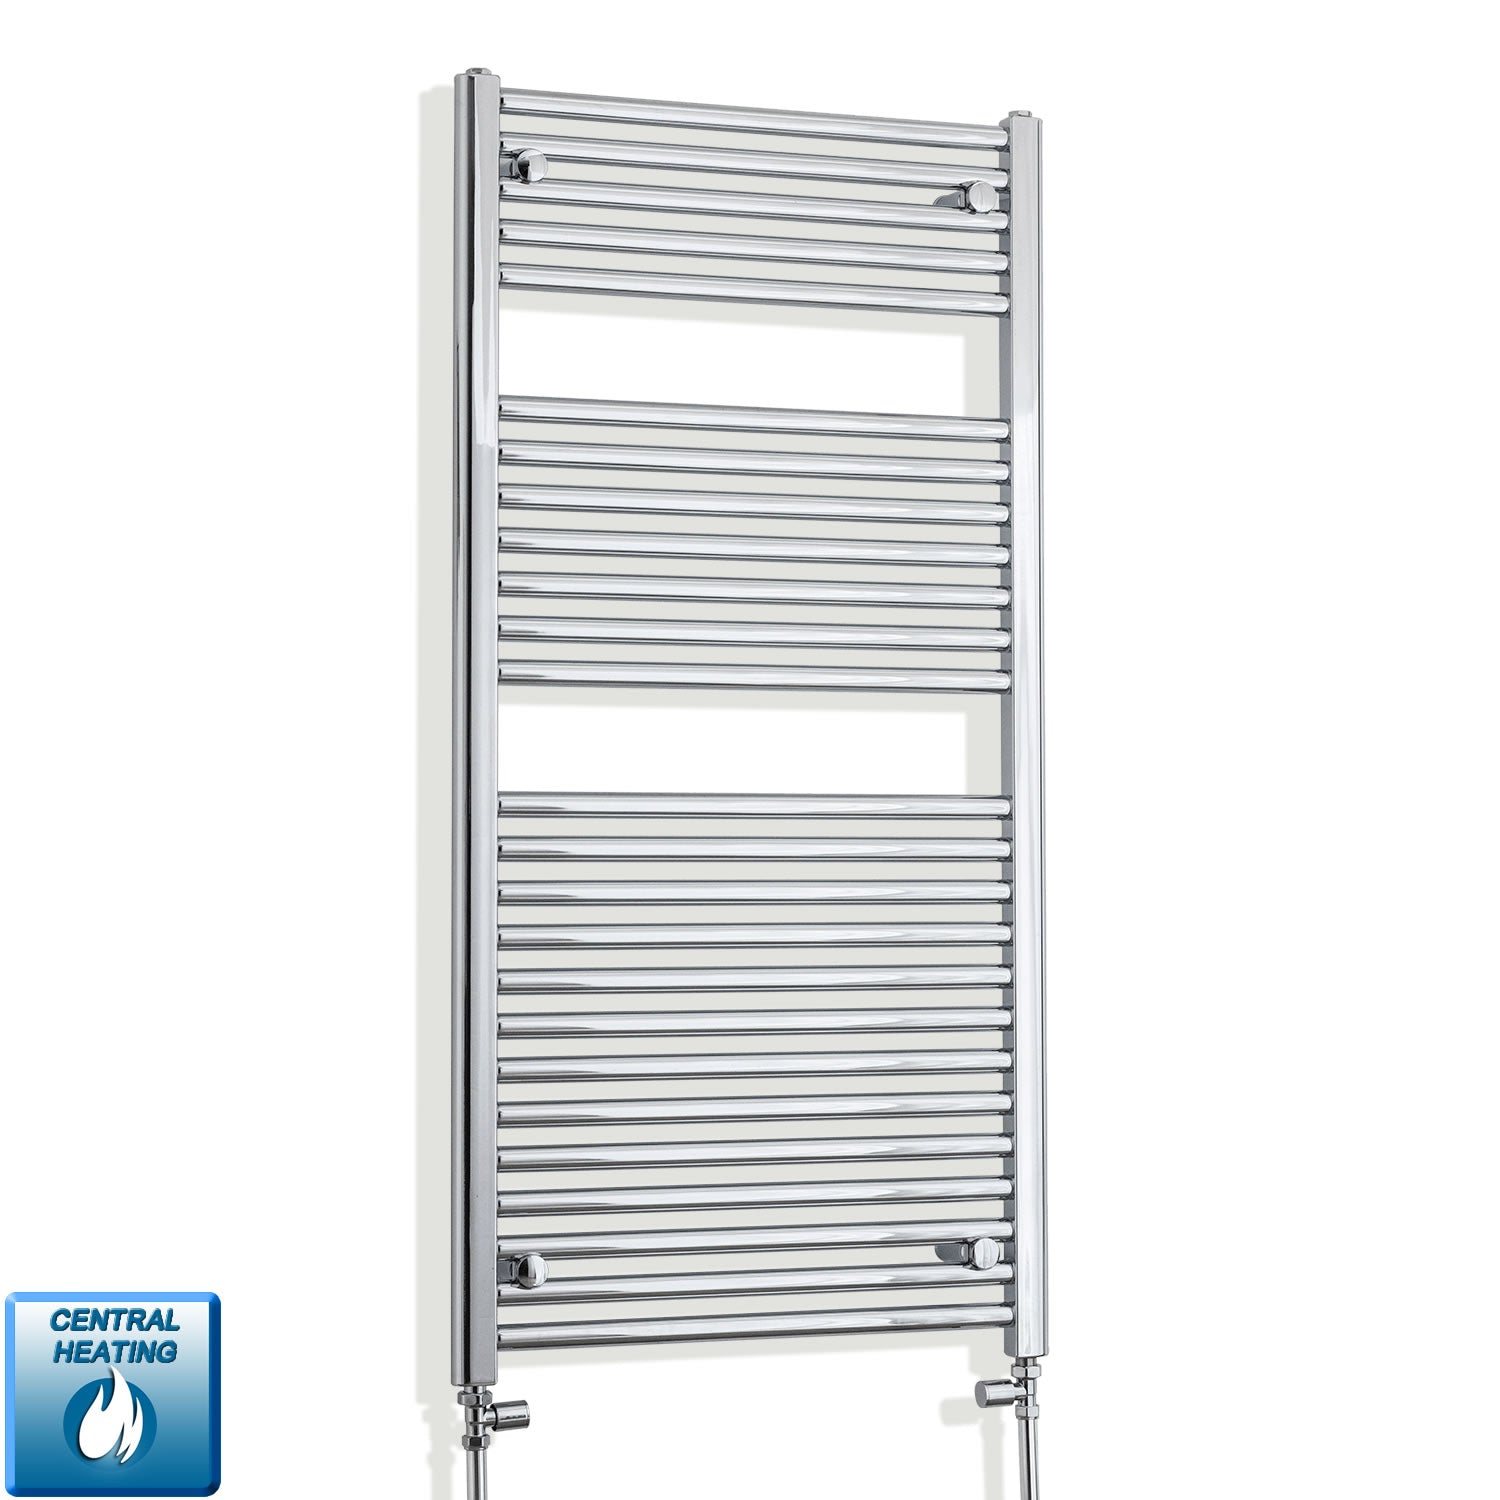 500mm Wide 1211mm High 25mm Straight Chrome Heated Towel Rail Radiator HTR,With Straight Valve